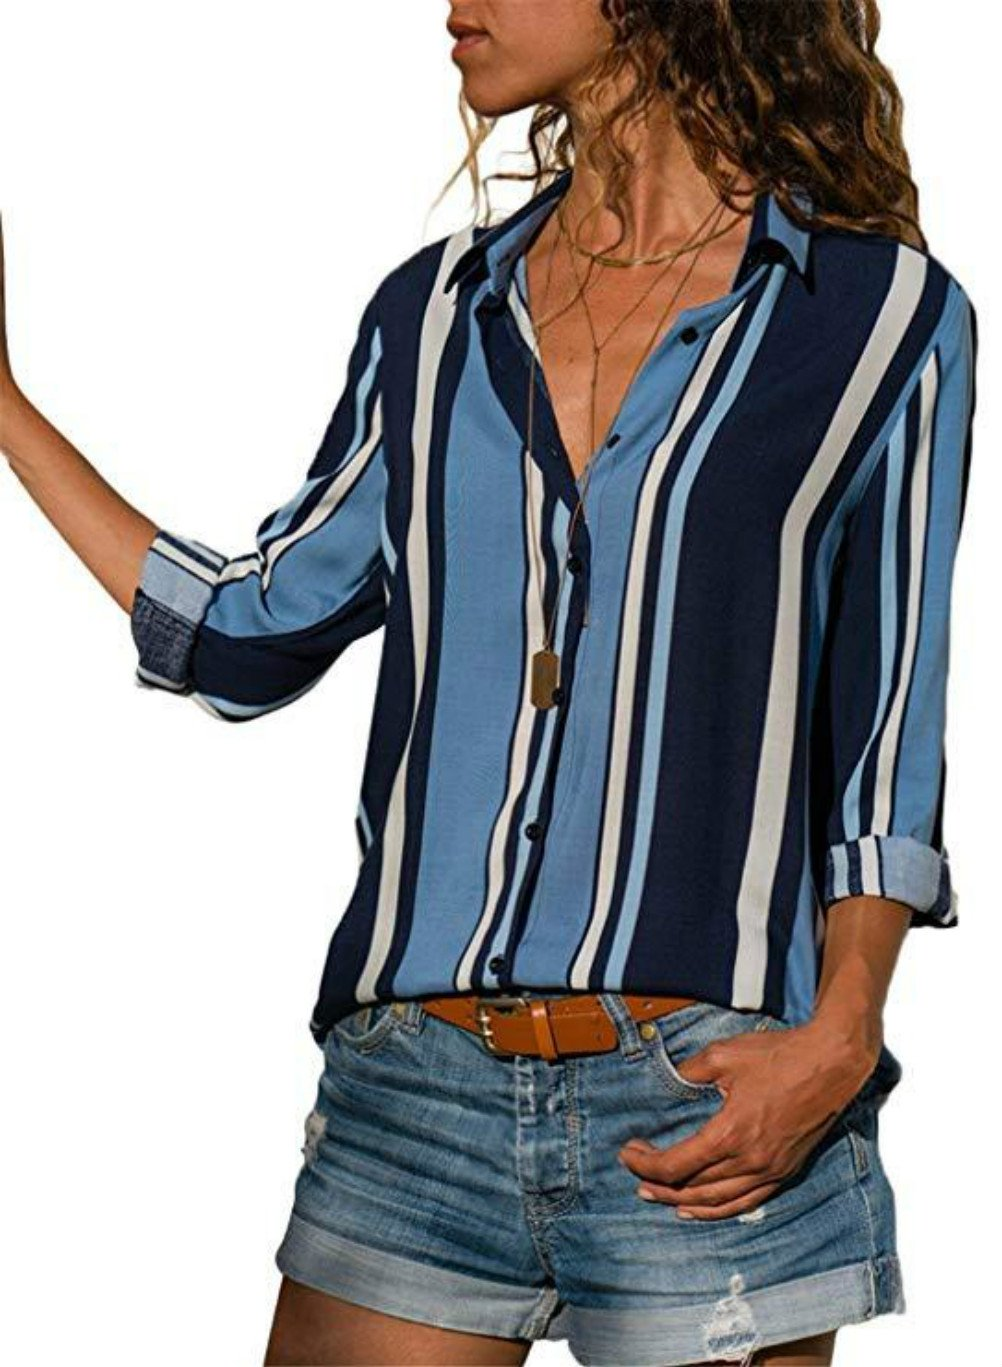 HUUSA Fashion Elegant Blouses for Women Long Sleeve Striped Shirt V Neck Button-up Tops X-Large